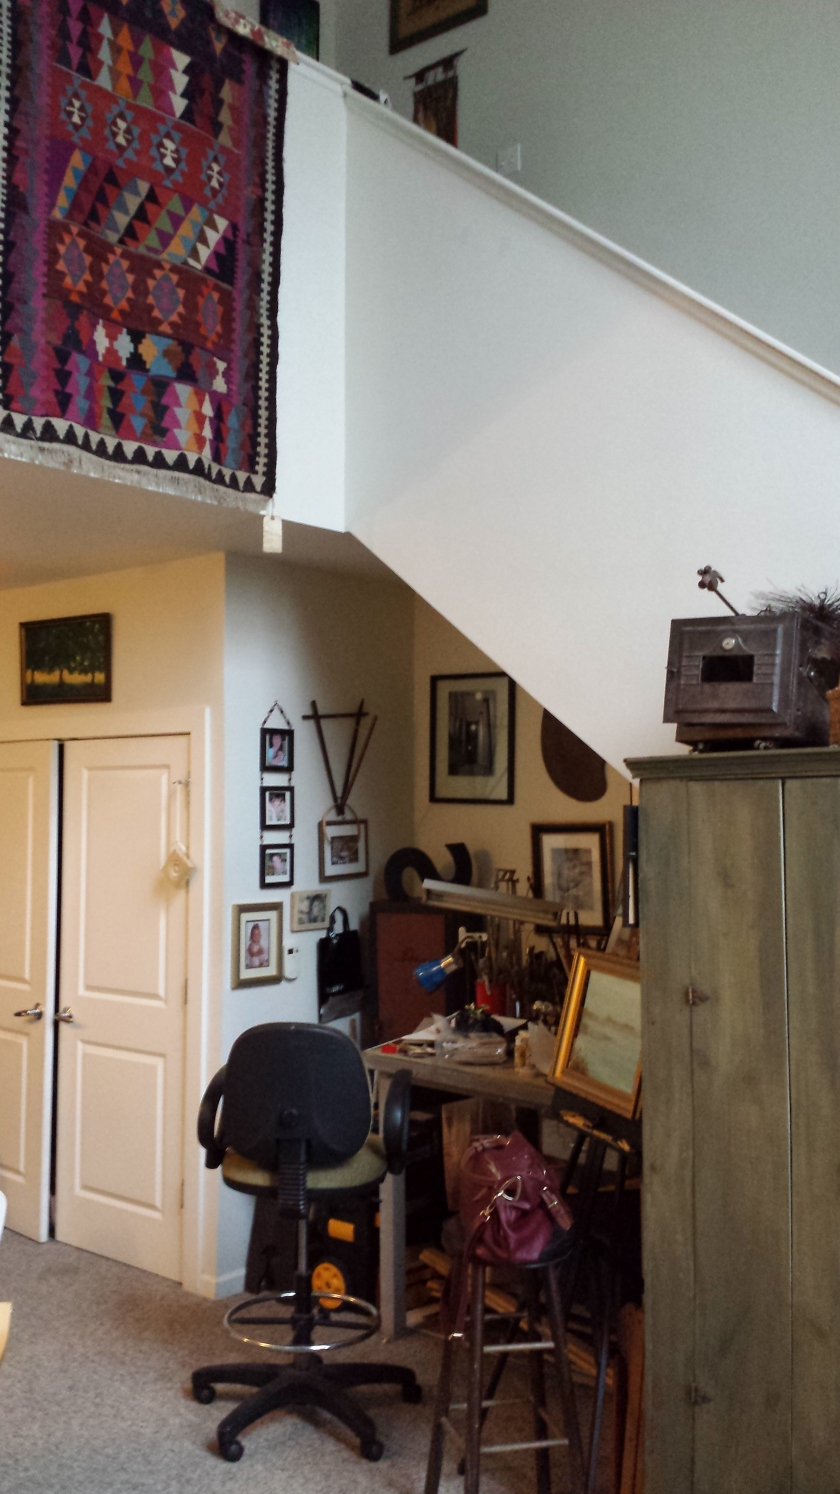 Jean Weir's creative space in her first floor loft apartment